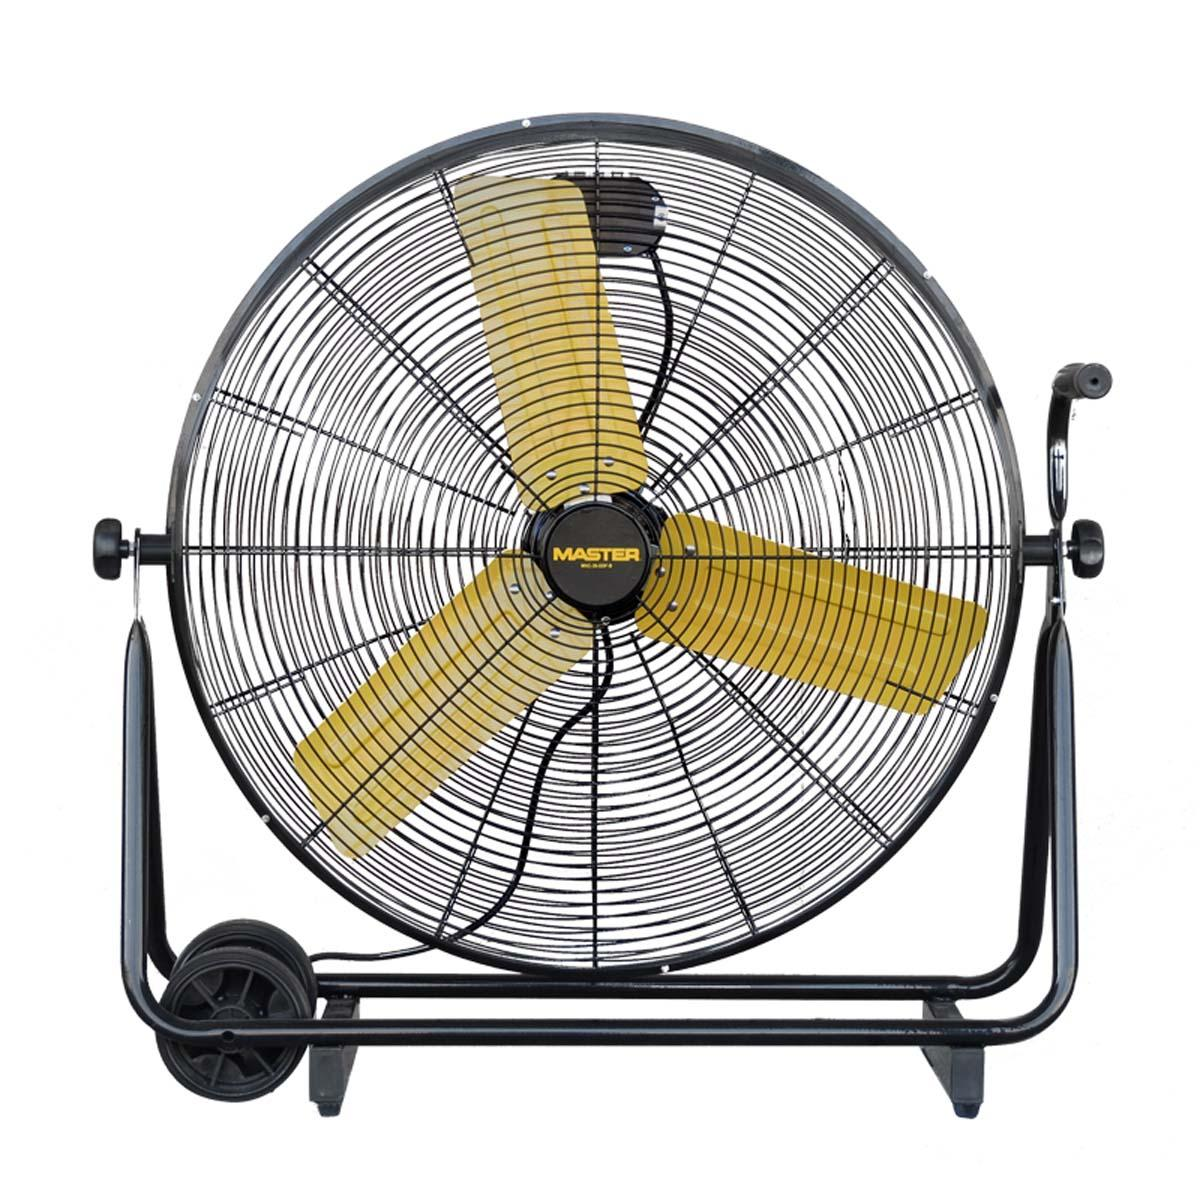 "(MAC-30-DDF-B) MASTER 30"" High Velocity TIltable Direct Drive Drum Fan"